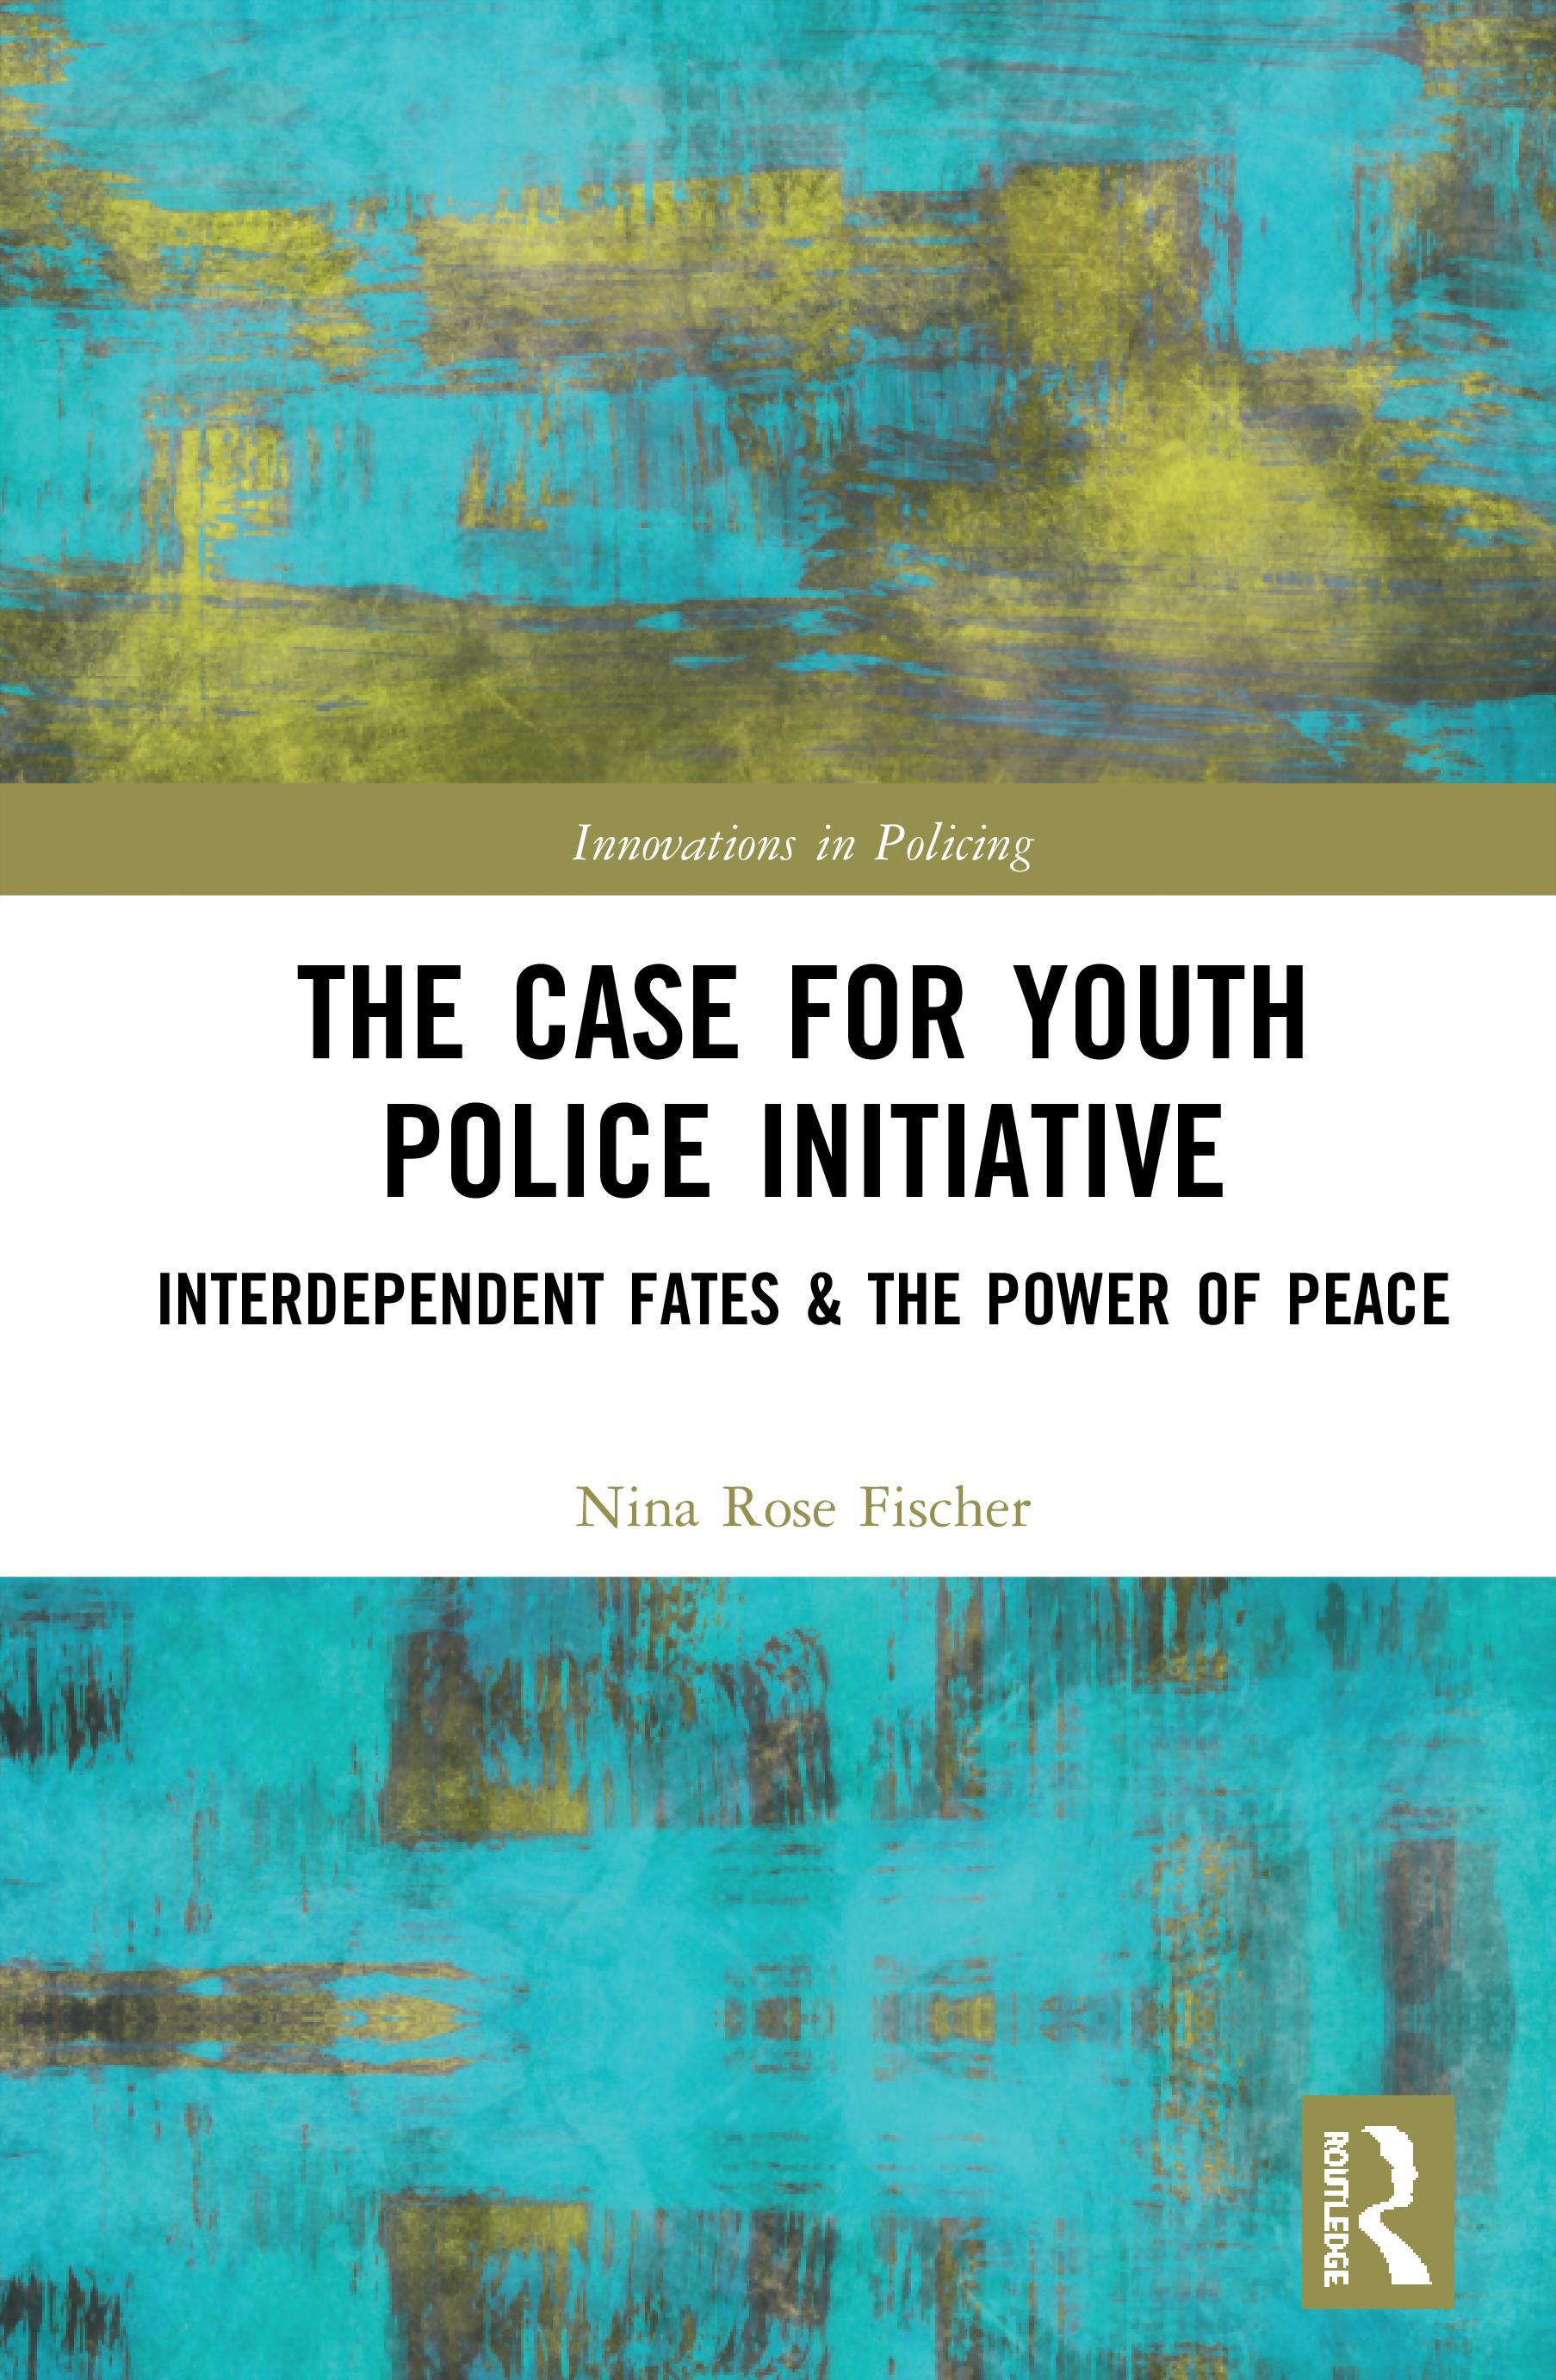 The Case for Youth Police Initiative: Interdependent Fates & the Power of Peace book cover